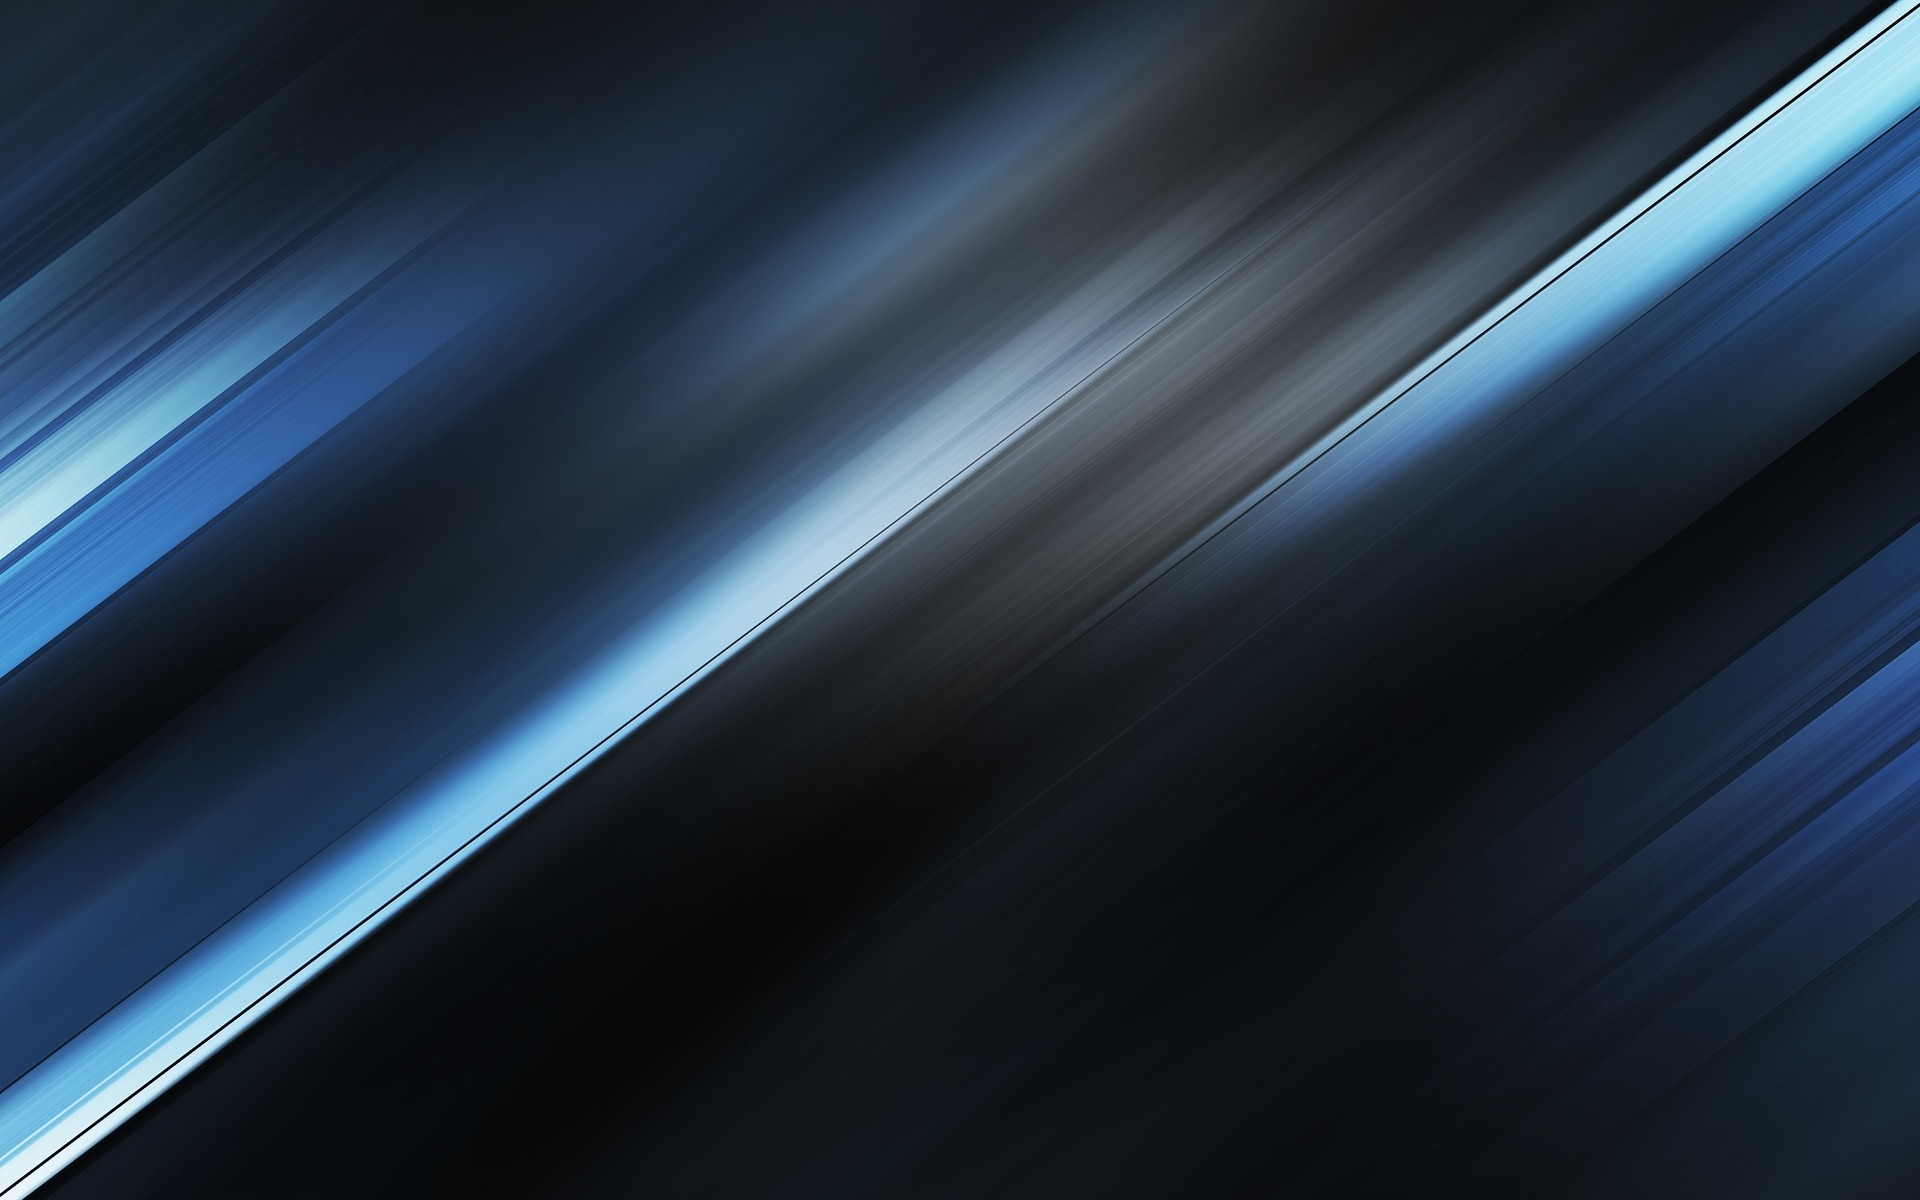 Simple Abstract Wallpaper